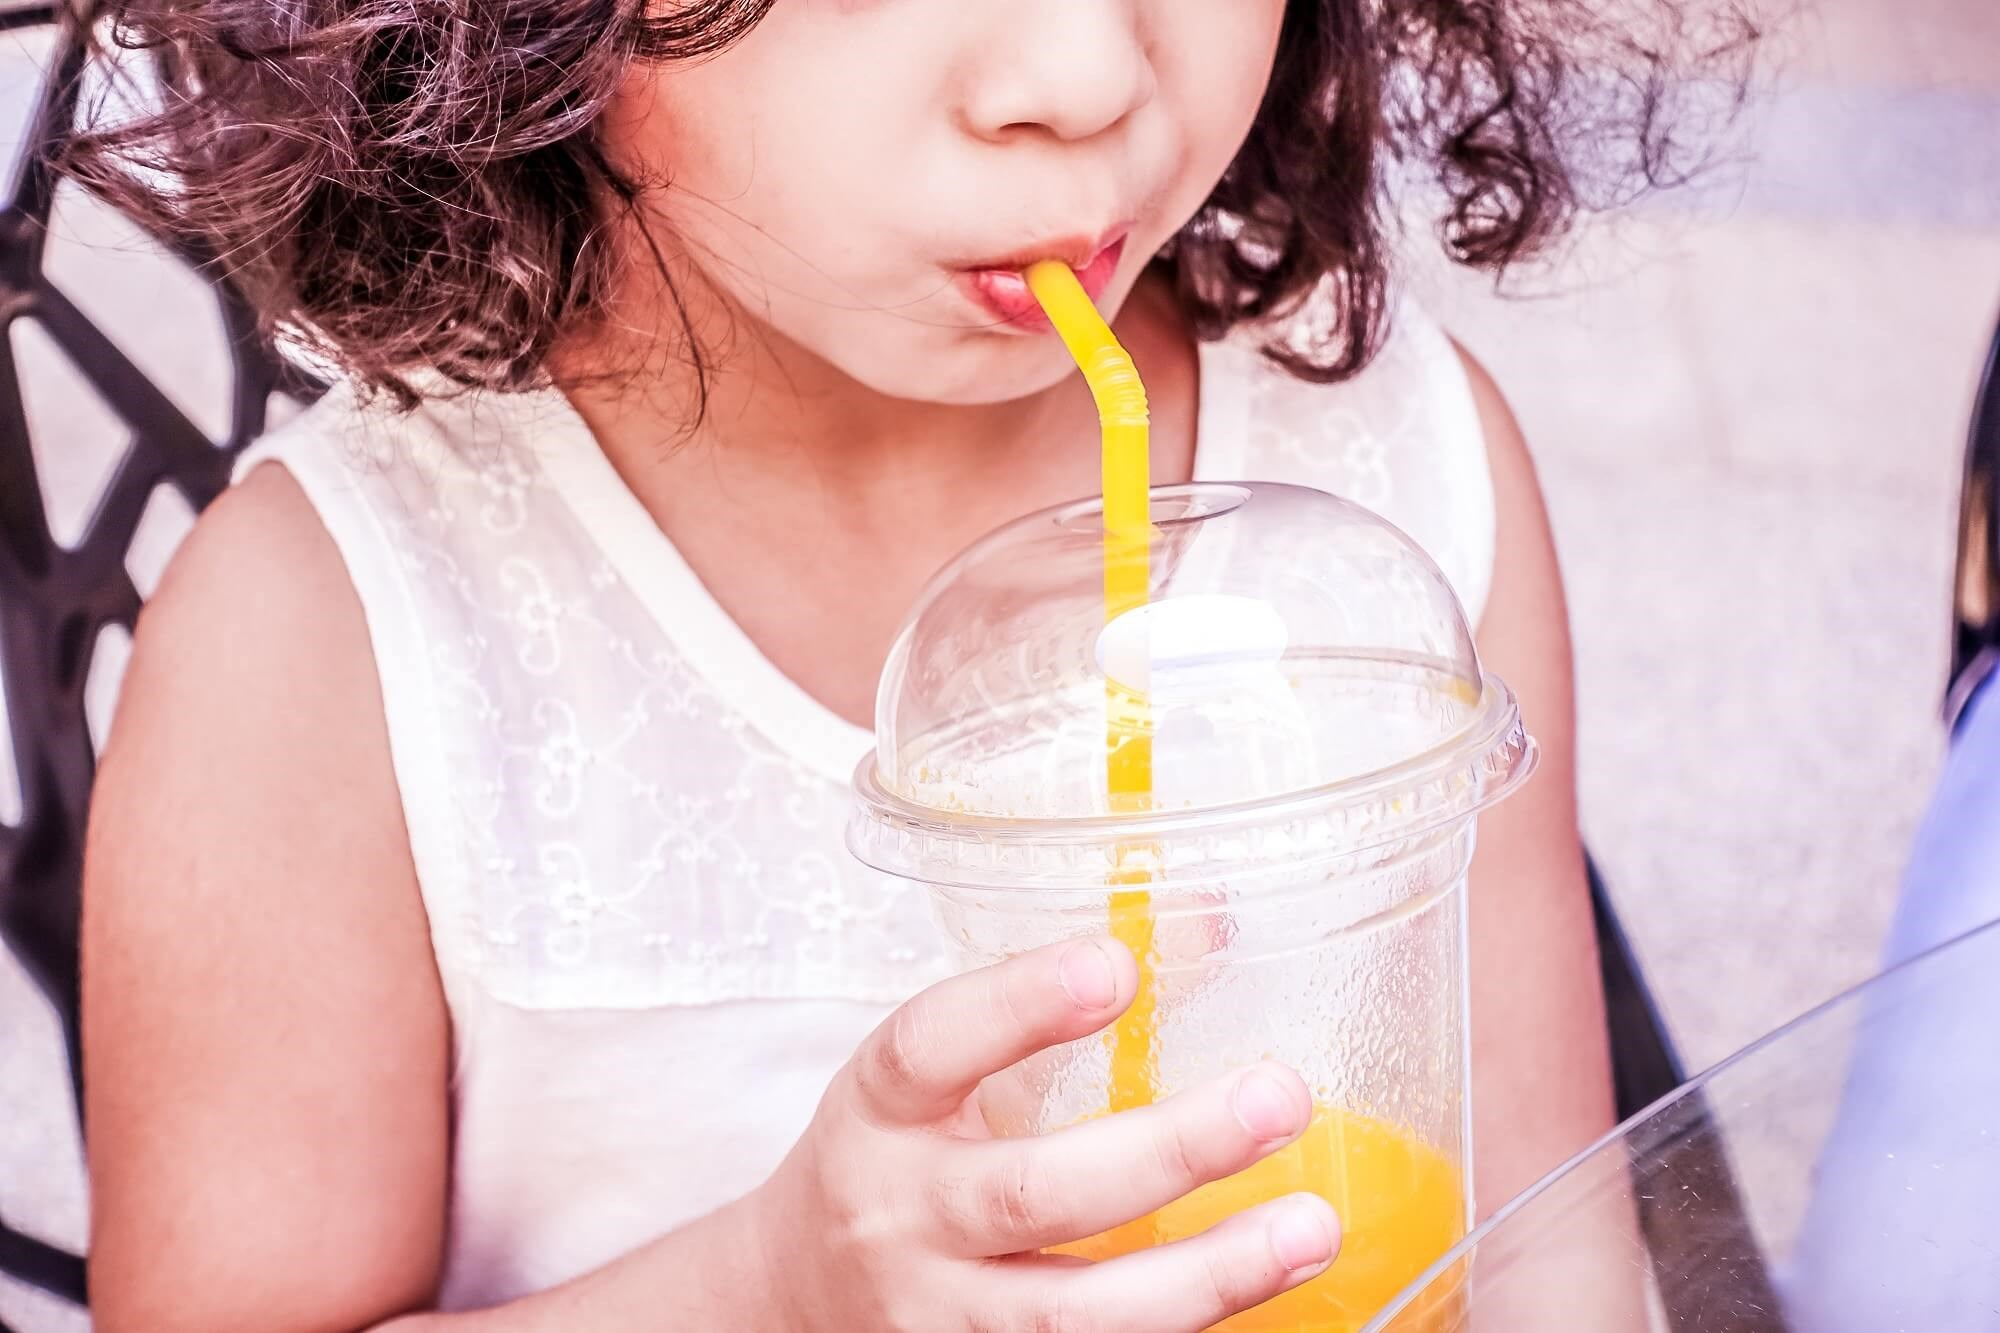 Education about healthy beverage choices is a crucial element in reducing pediatric obesity.